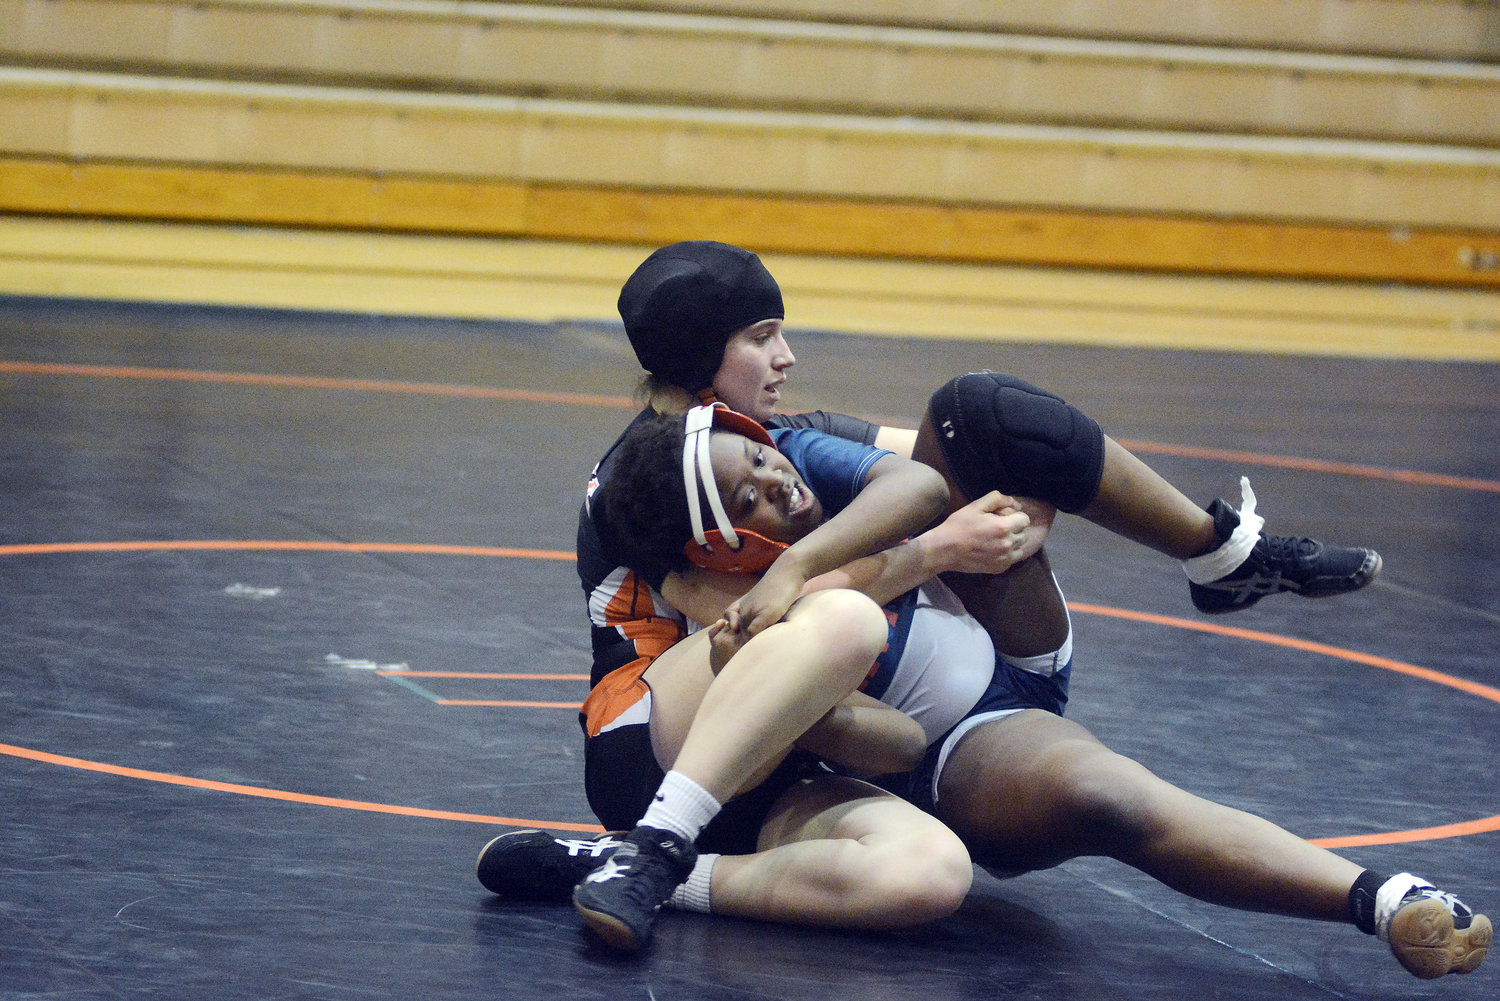 Emma Reed controls Central Park Hills wrestler Jasmine Alley during their exhibition wrestling match at 142 pounds.